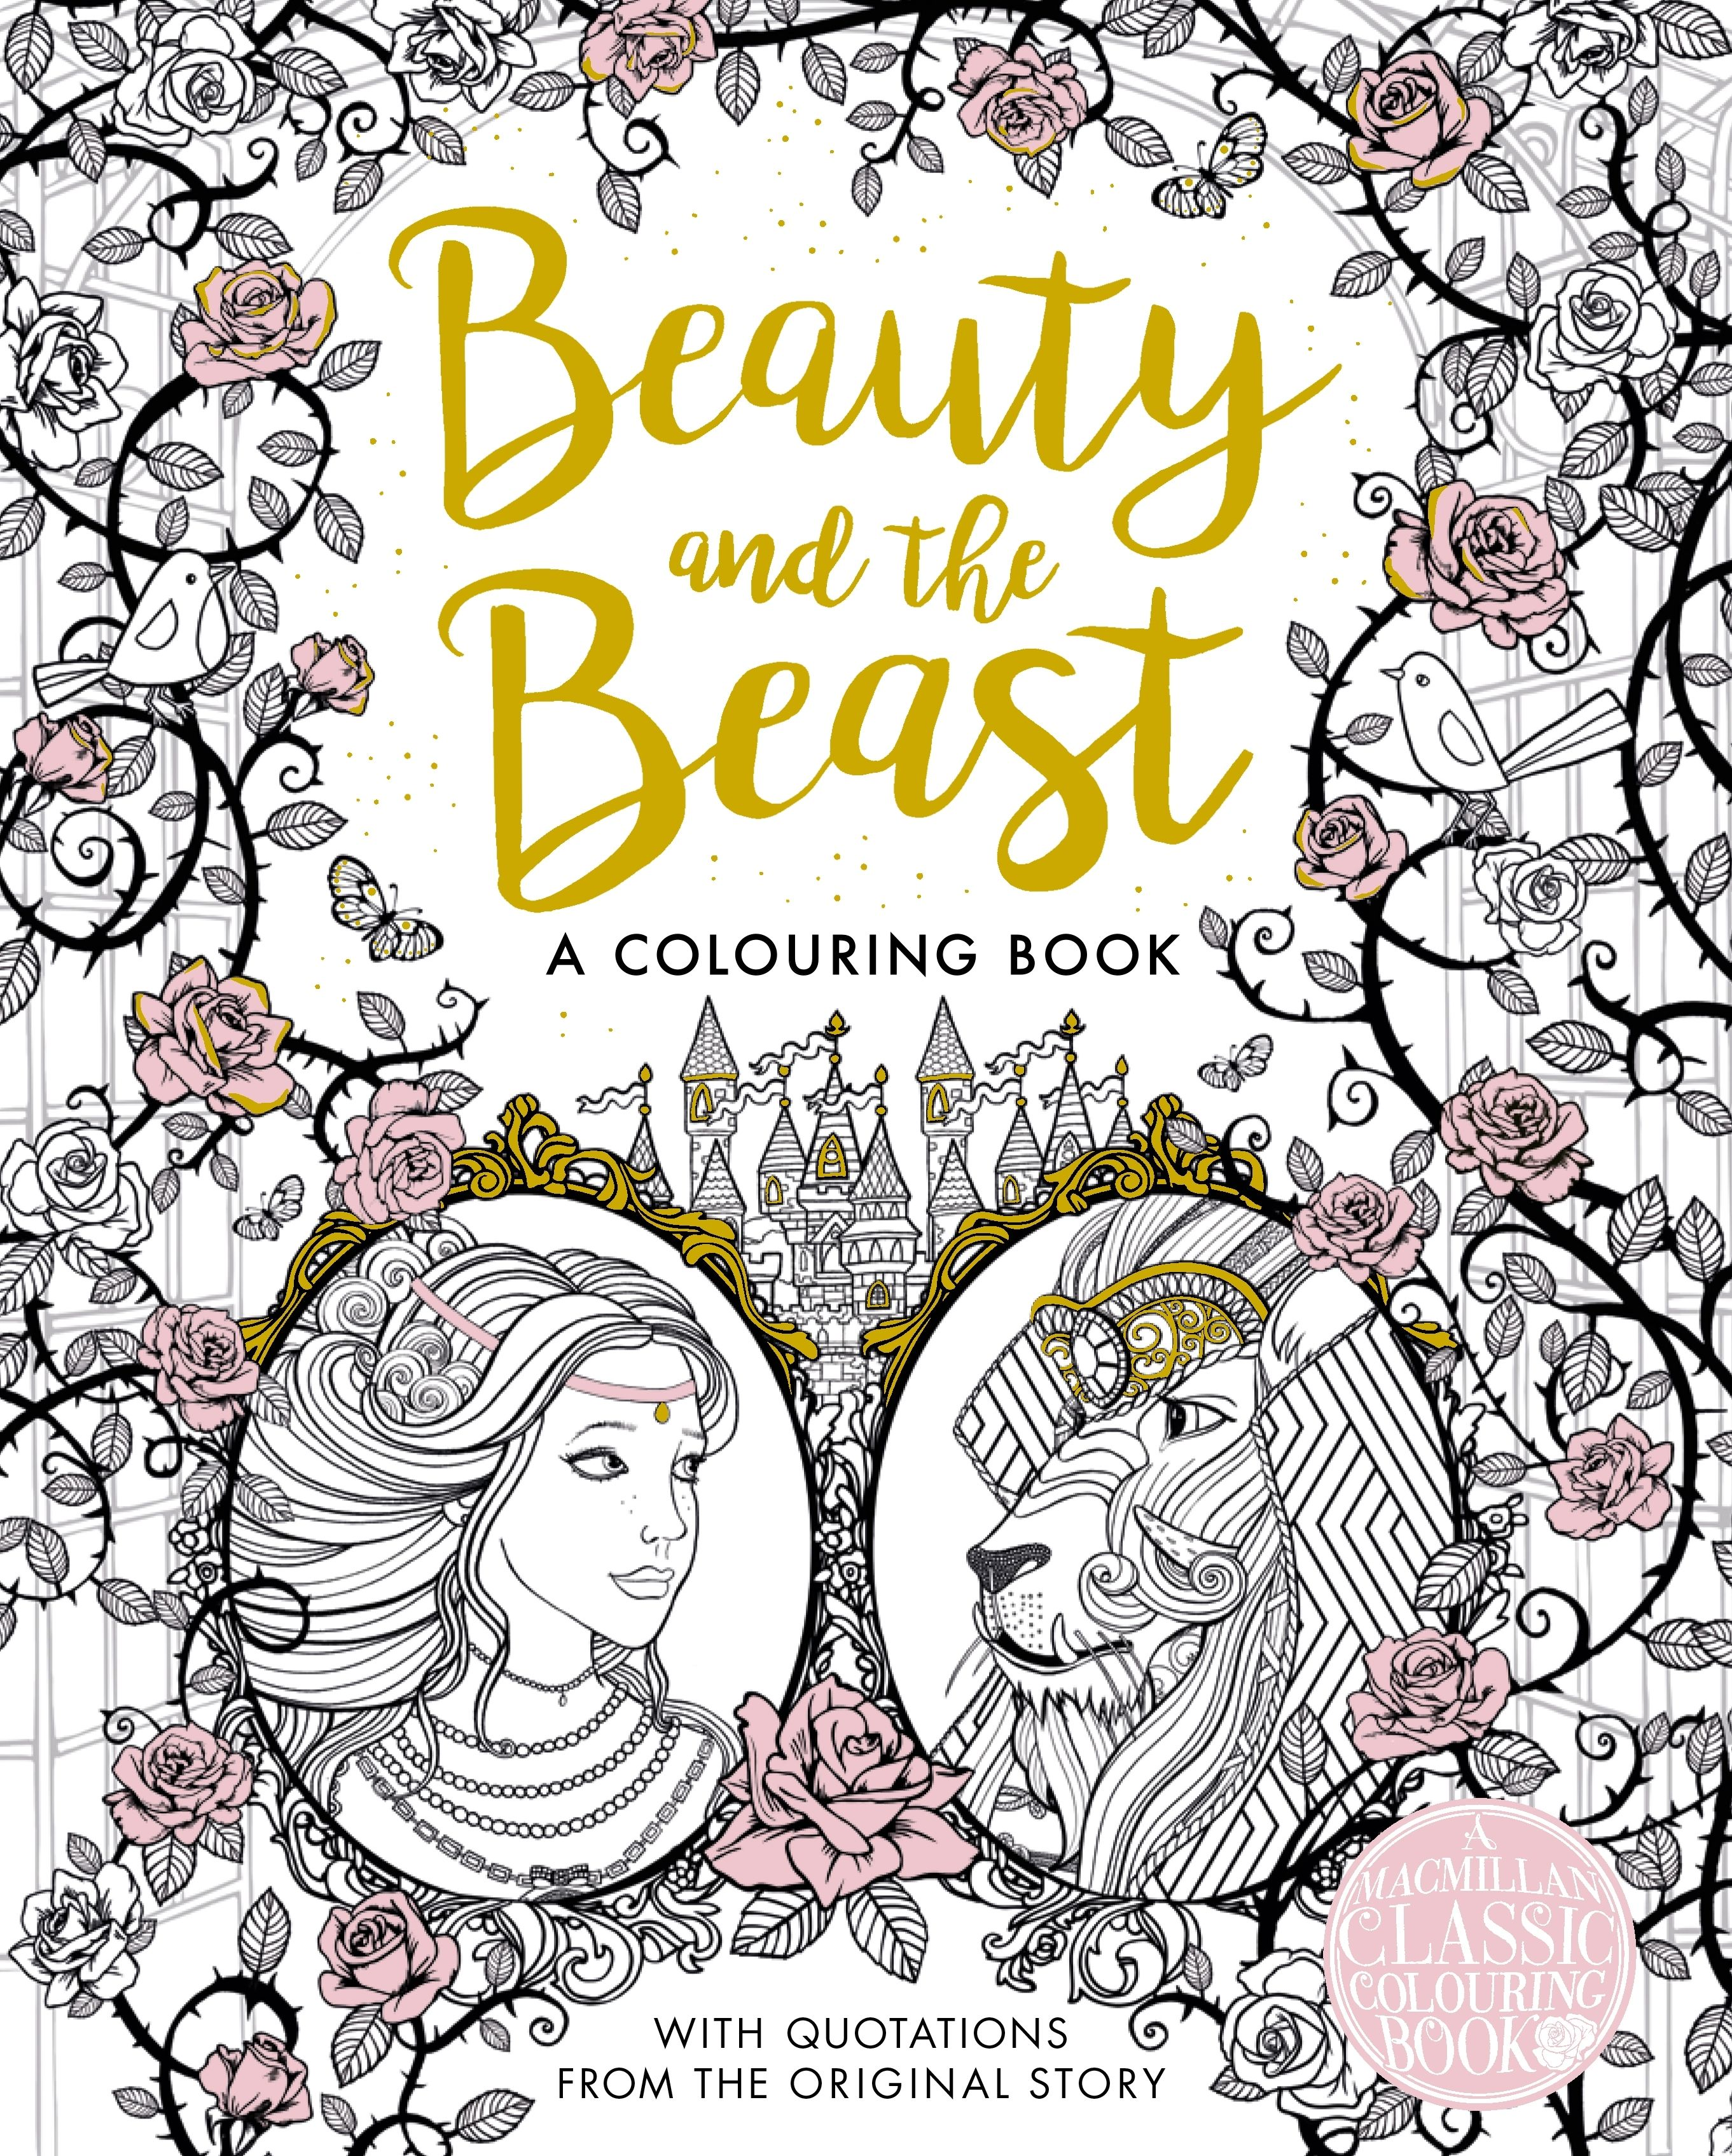 The Beauty and the Beast Colouring Book | COLOURING BOOKS | Pinterest